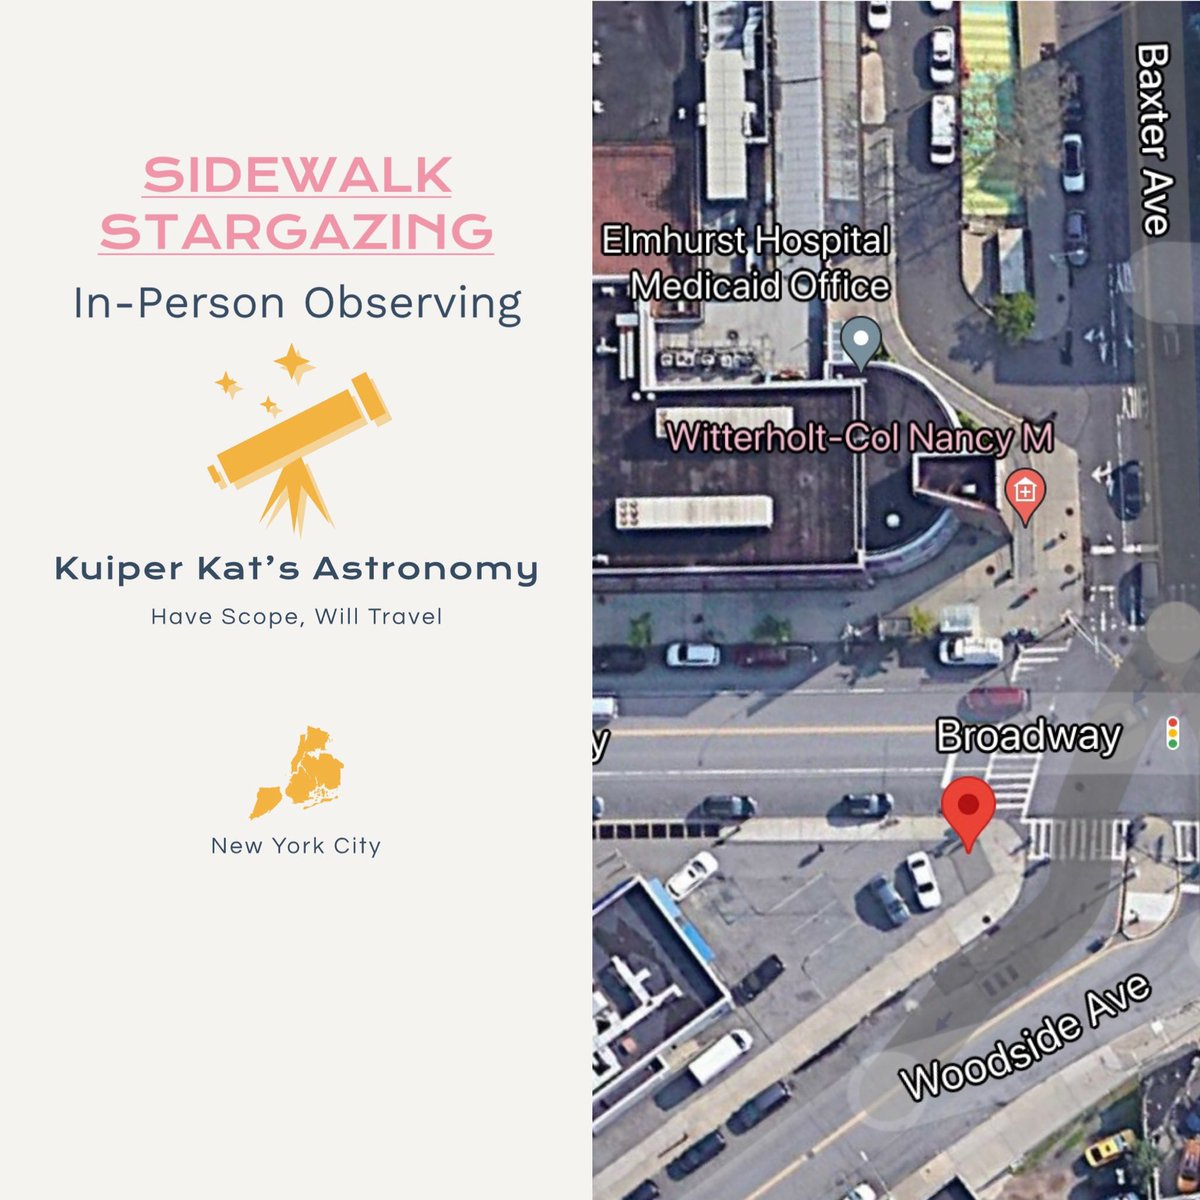 SATURDAY: Join me for some lunacy as we gaze at the Moon and other things on June 19, from 8:30 – 9:30 PM. Free event. Masks recommended.   #SidewalkAstronomy #Elmhurst #Stargazing #NYCAstronomy https://t.co/CfkibFxlmL